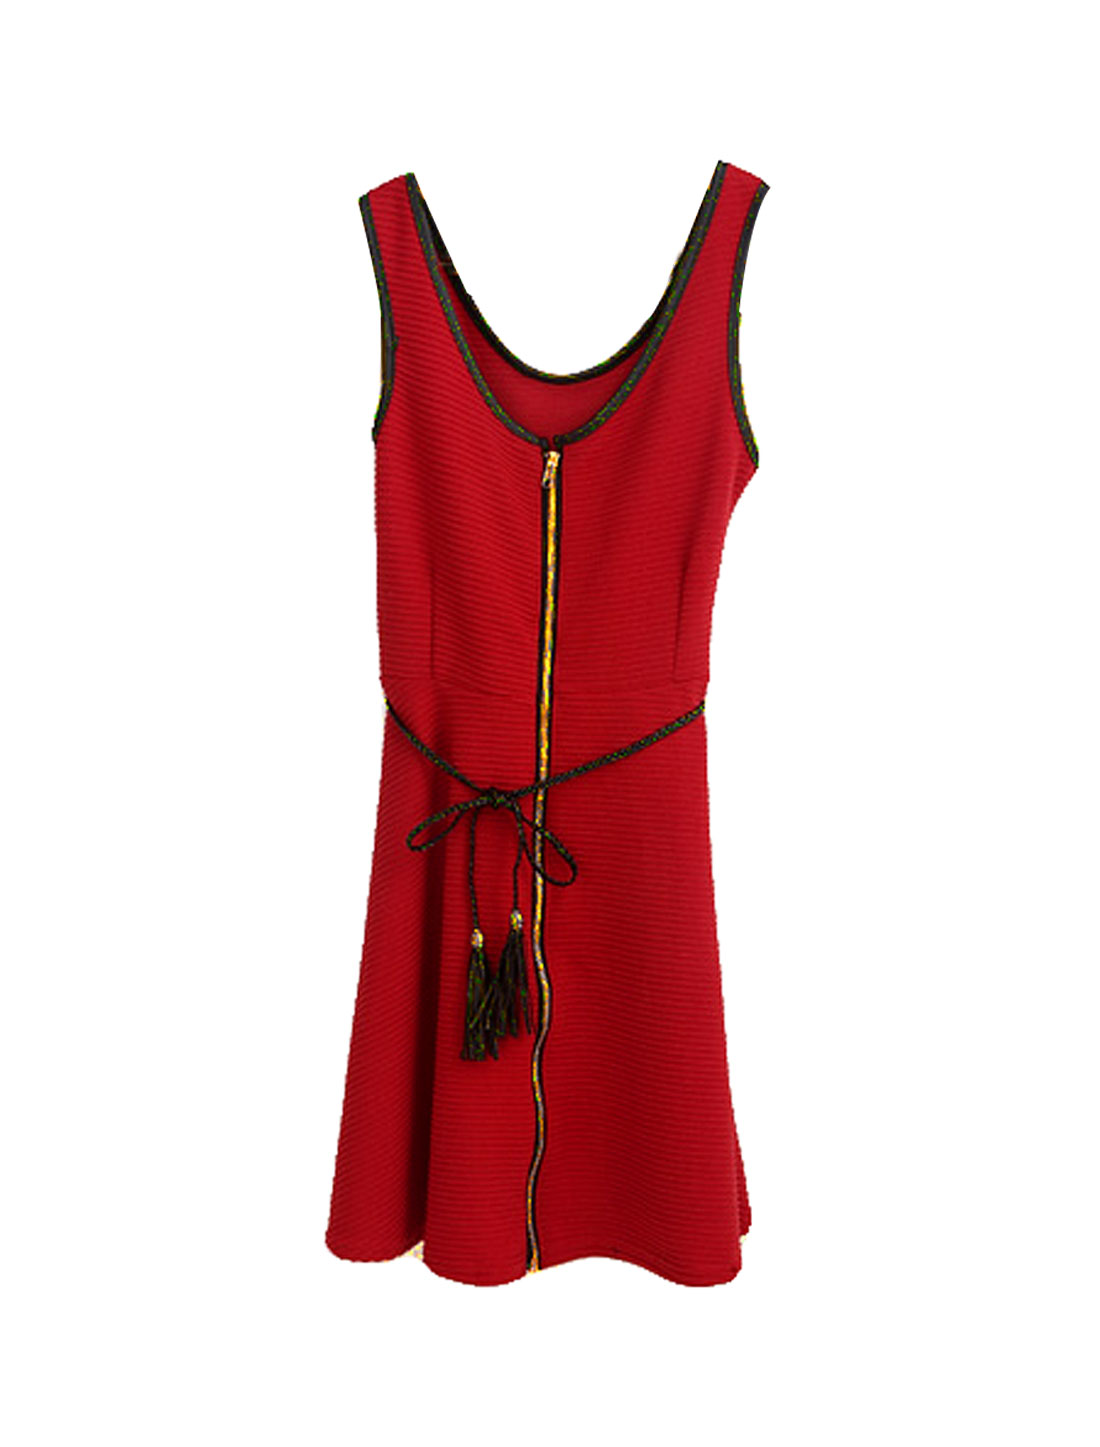 Woman Red Black Trim U Neck Sleeveless Zip up Banded Dress S